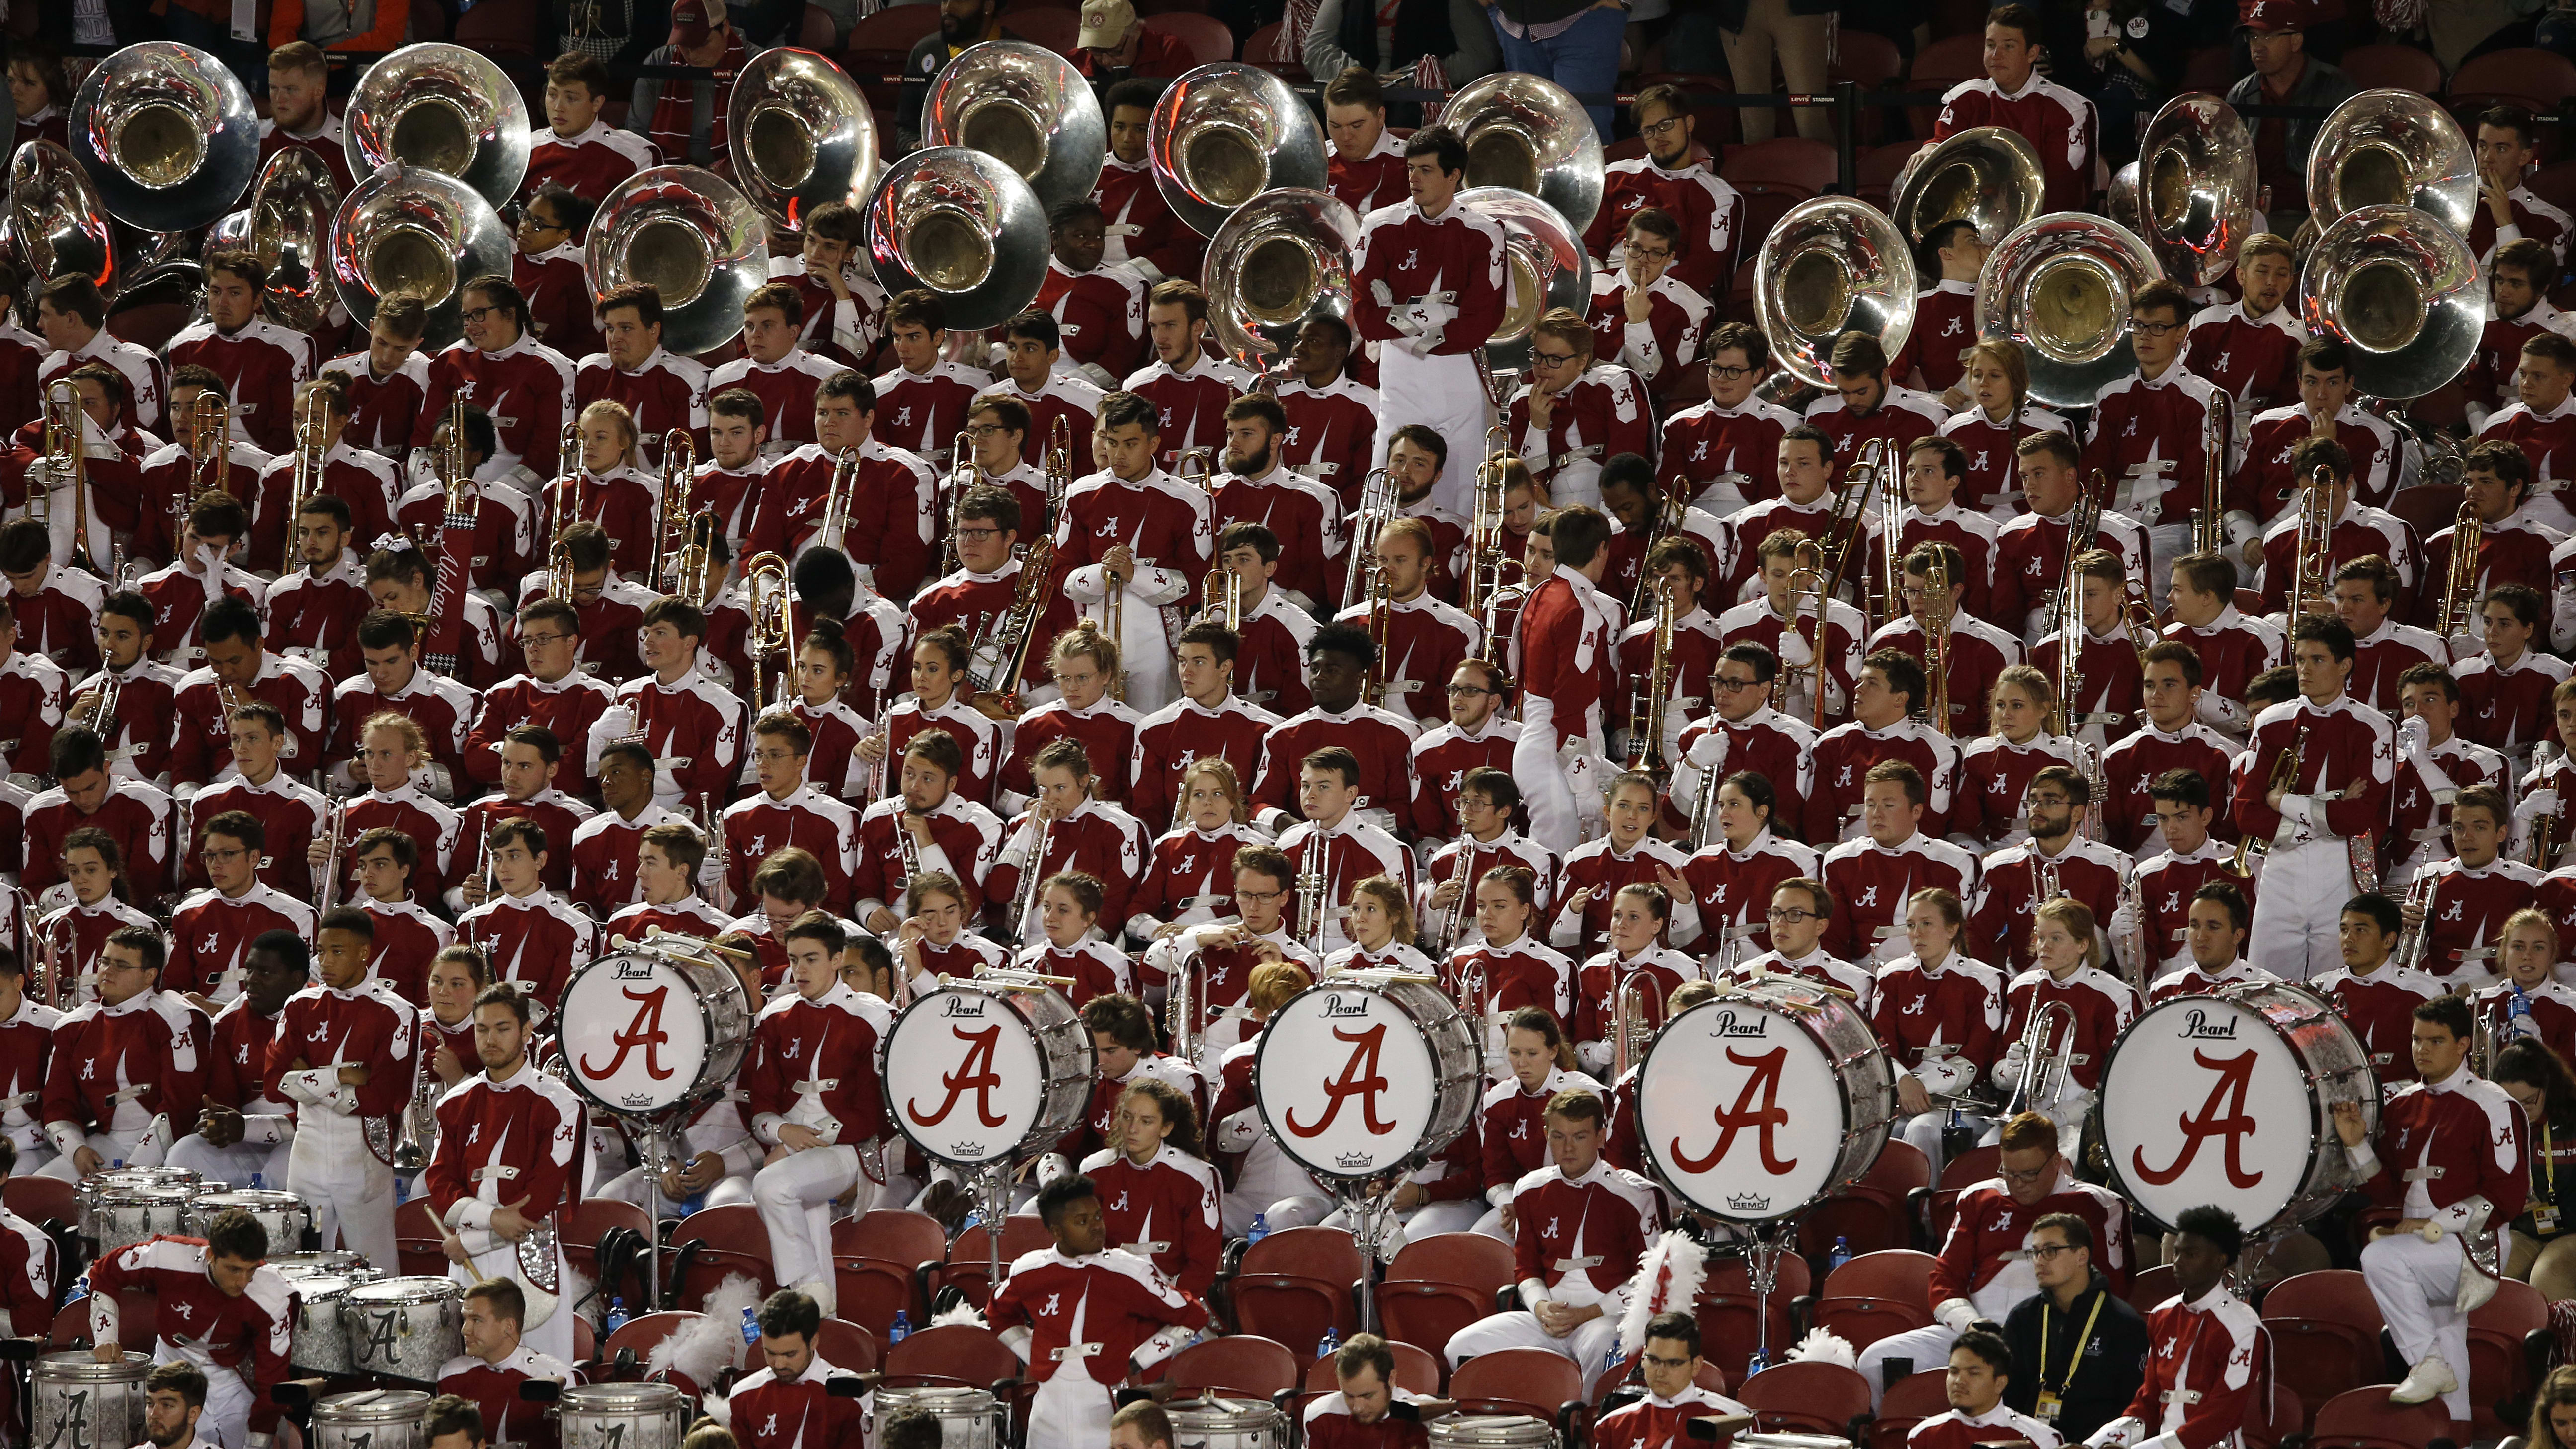 SANTA CLARA, CALIFORNIA - JANUARY 07: The Alabama Crimson Tide marching band performs in the College Football Playoff National Championship against the Clemson Tigers at Levi's Stadium on January 07, 2019 in Santa Clara, California. (Photo by Lachlan Cunningham/Getty Images)